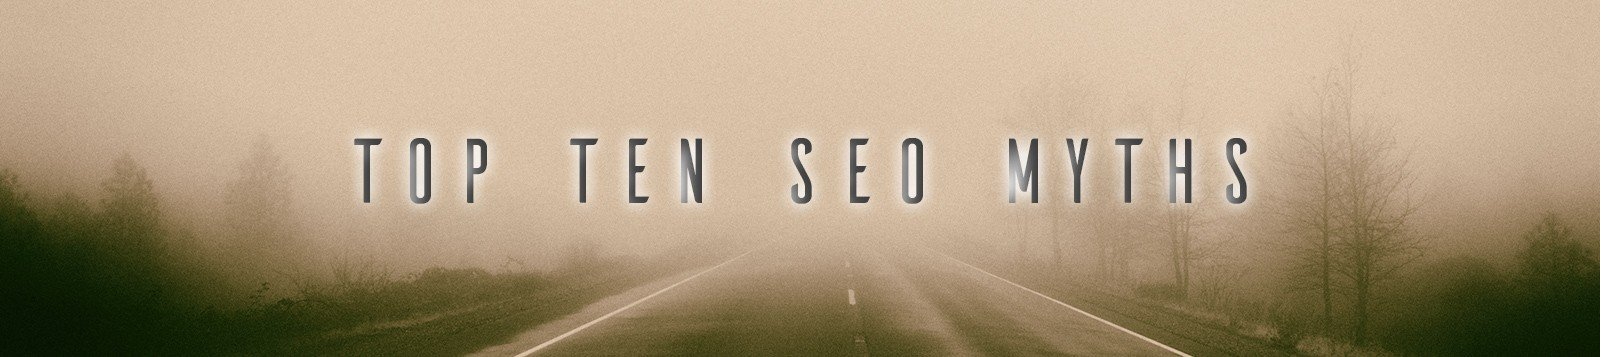 misty-and-foggy-road-top-ten-SEO-myths